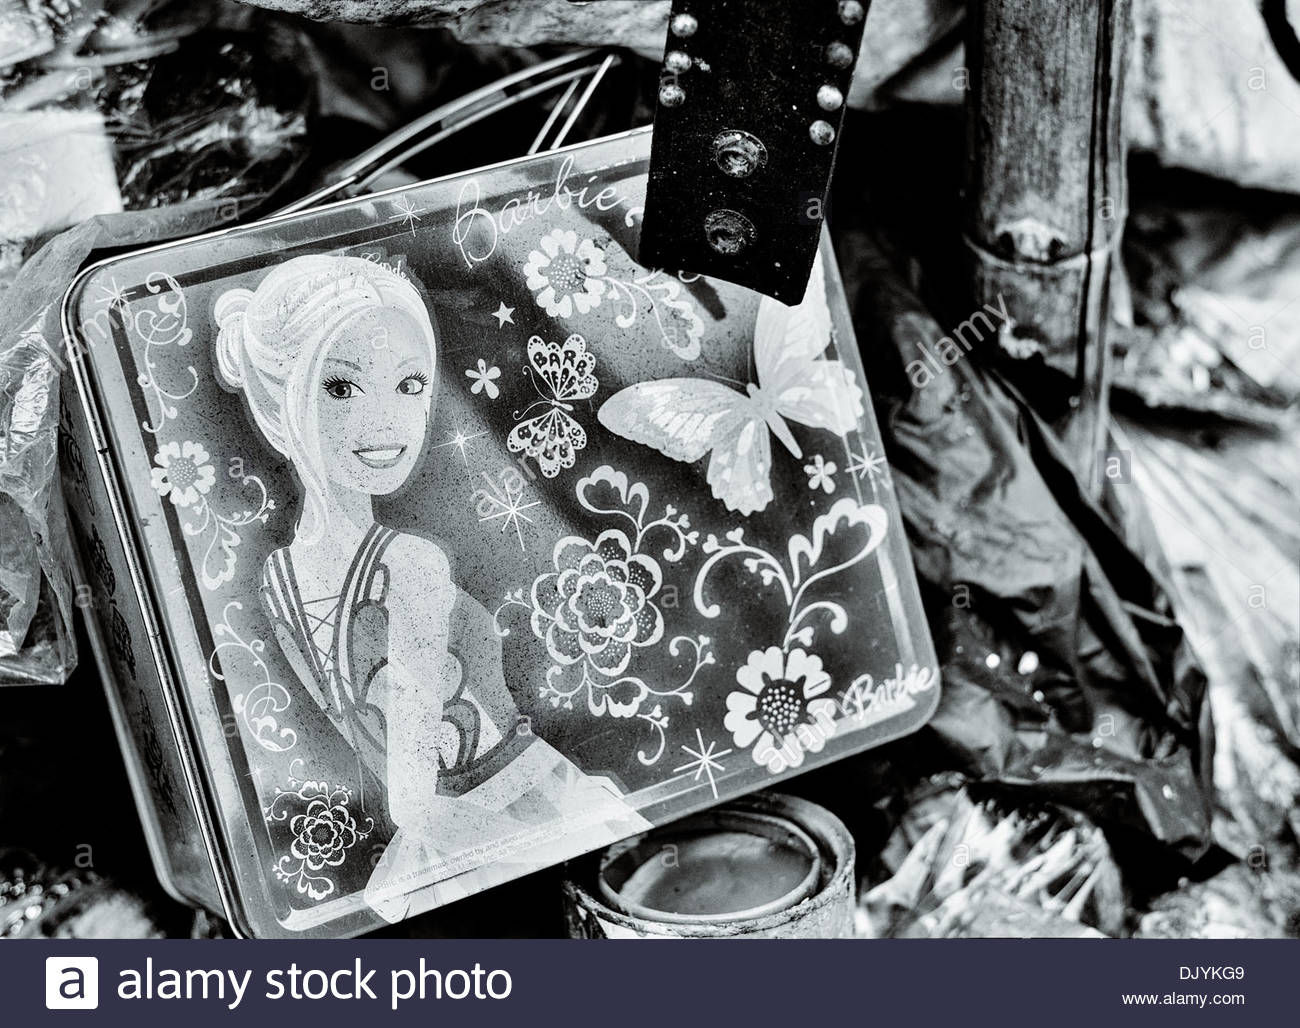 A Barbie metal tin box inside a dilapidated wooden house in the Sathorn district of Bangkok, Thailand - Stock Image